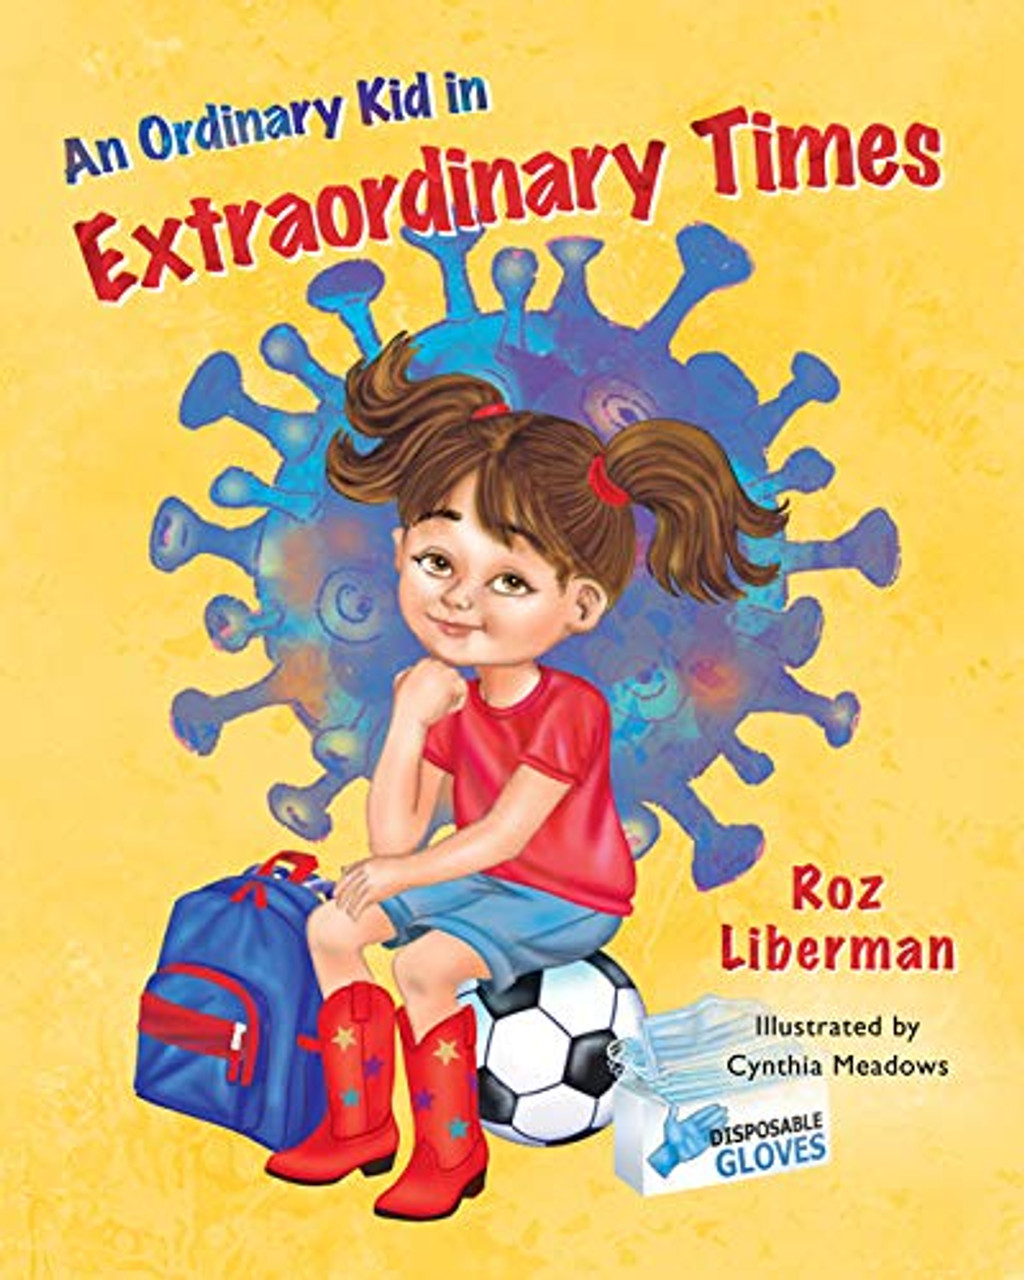 An Ordinary Kid in Extraordinary Times